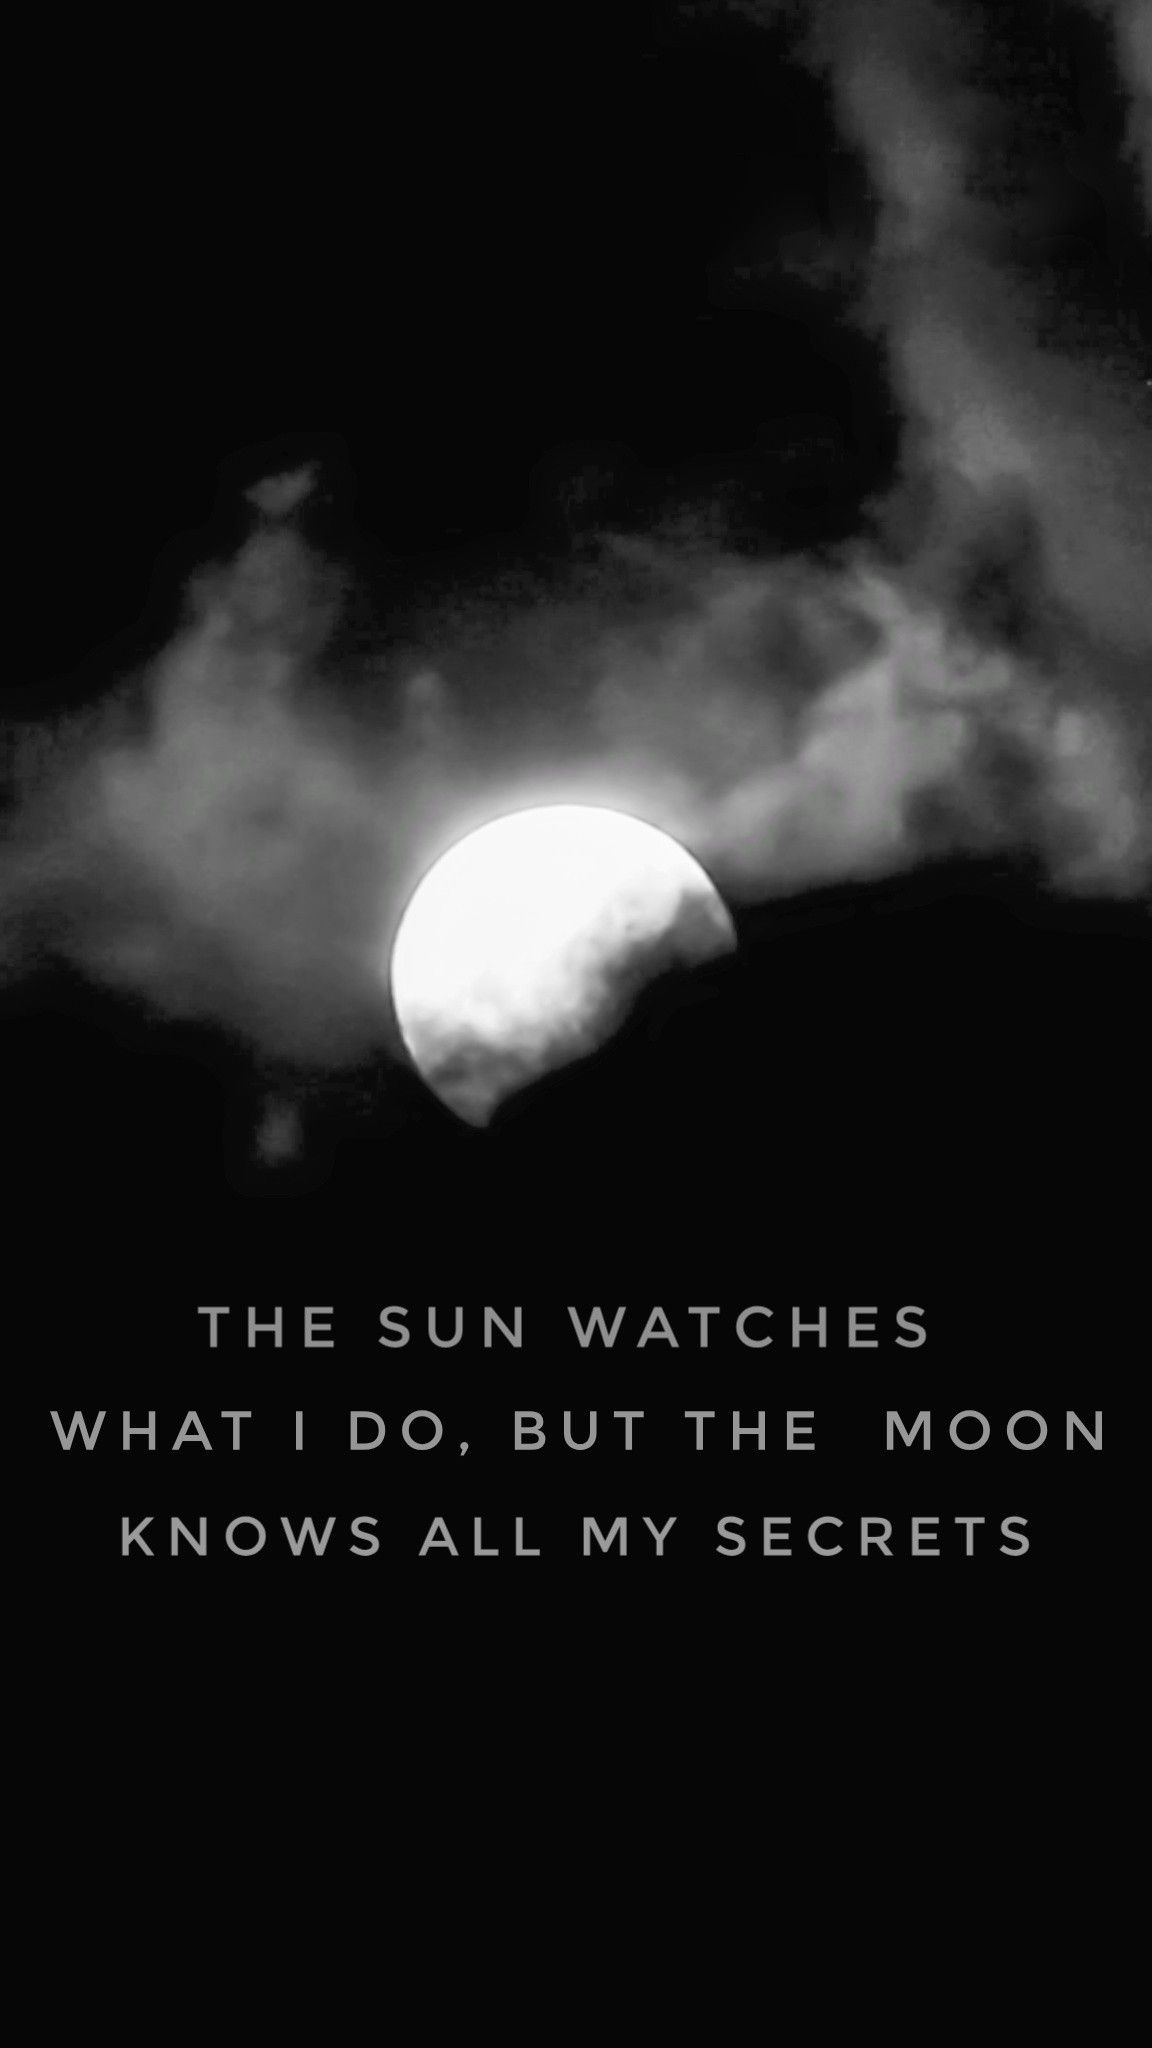 secret idézetek Instagram : @iamrutulshah The sun watches what i do, but the moon